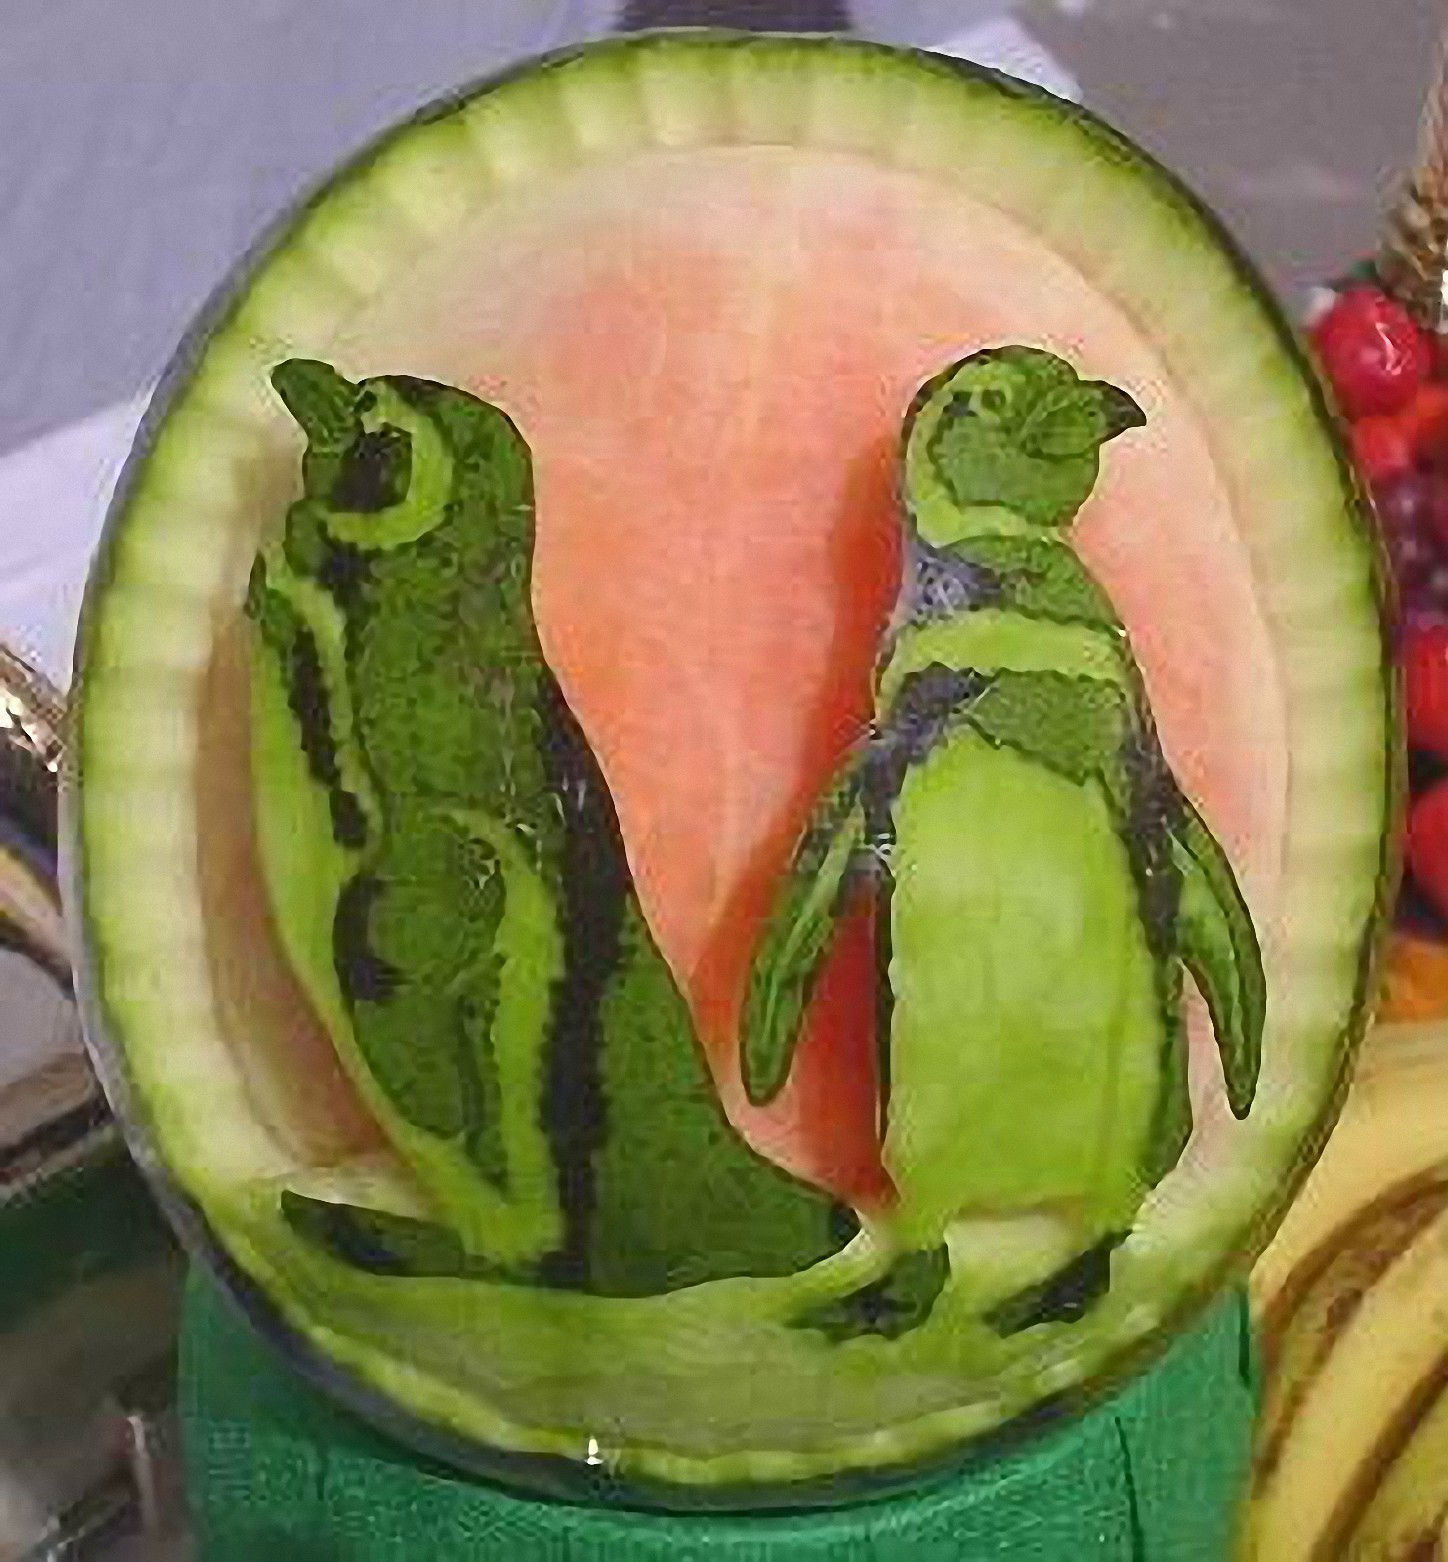 creative_fruit_carvings-12